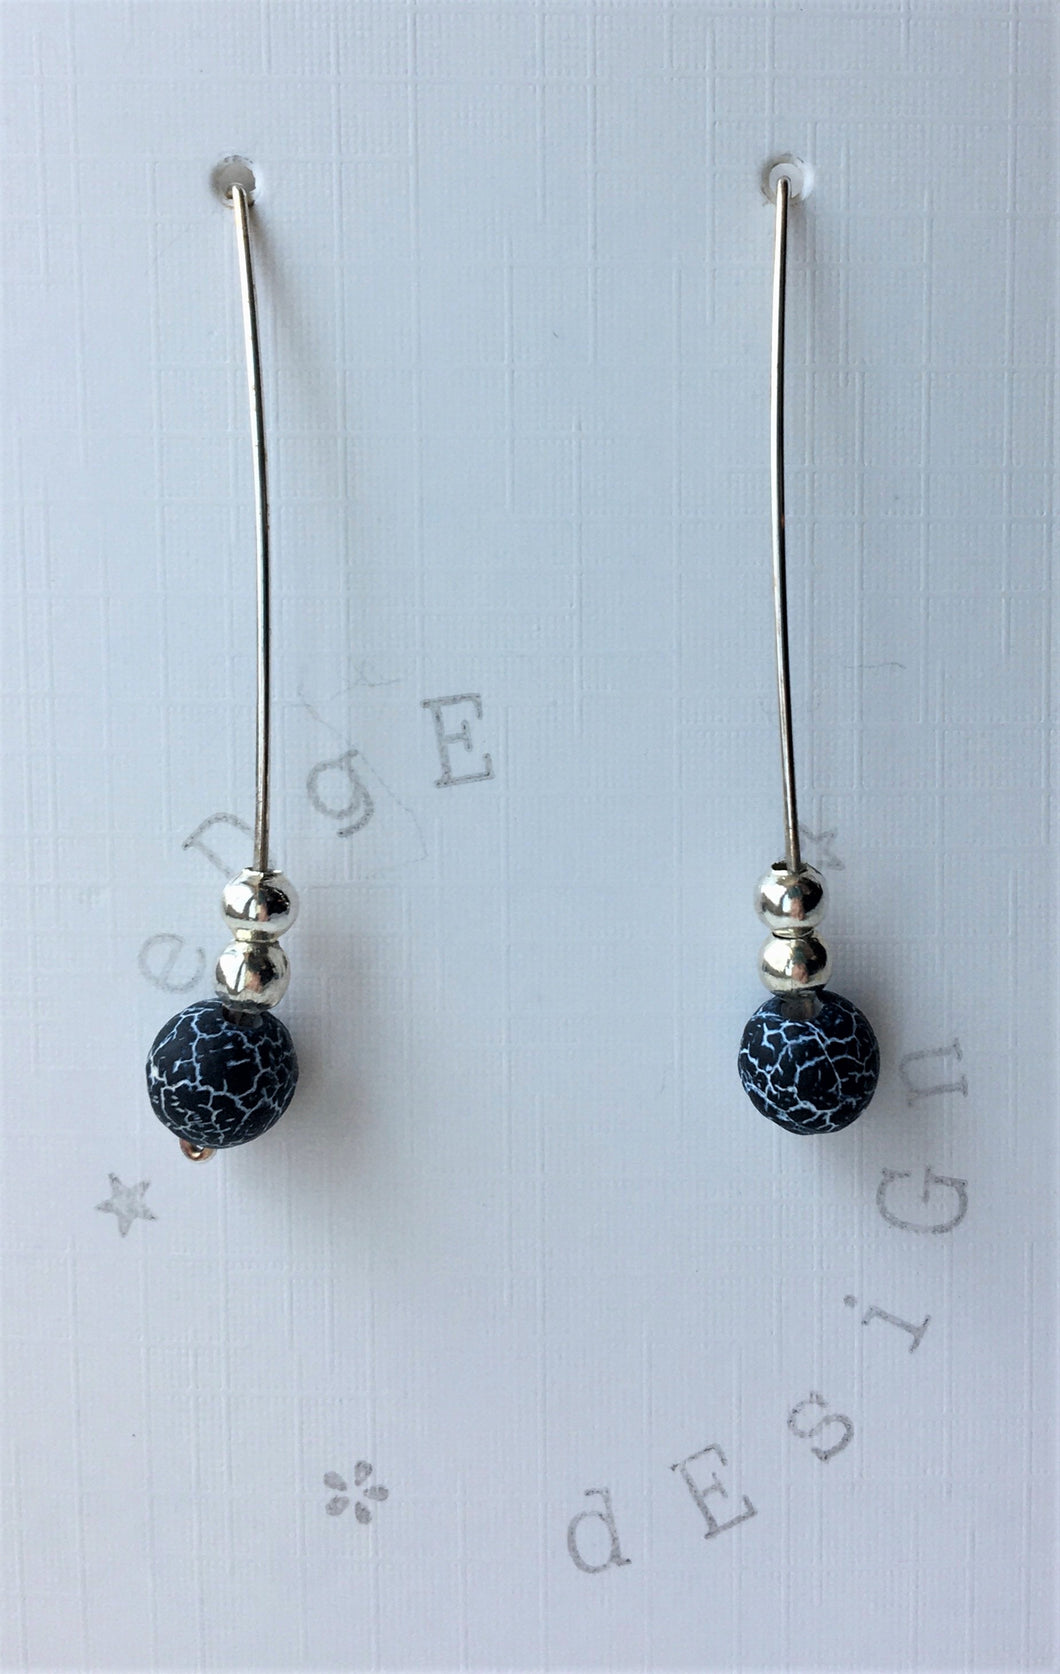 Silver Wire Drop Earrings - Grey Frosted Agate and Silver beads - eDgE dEsiGn London